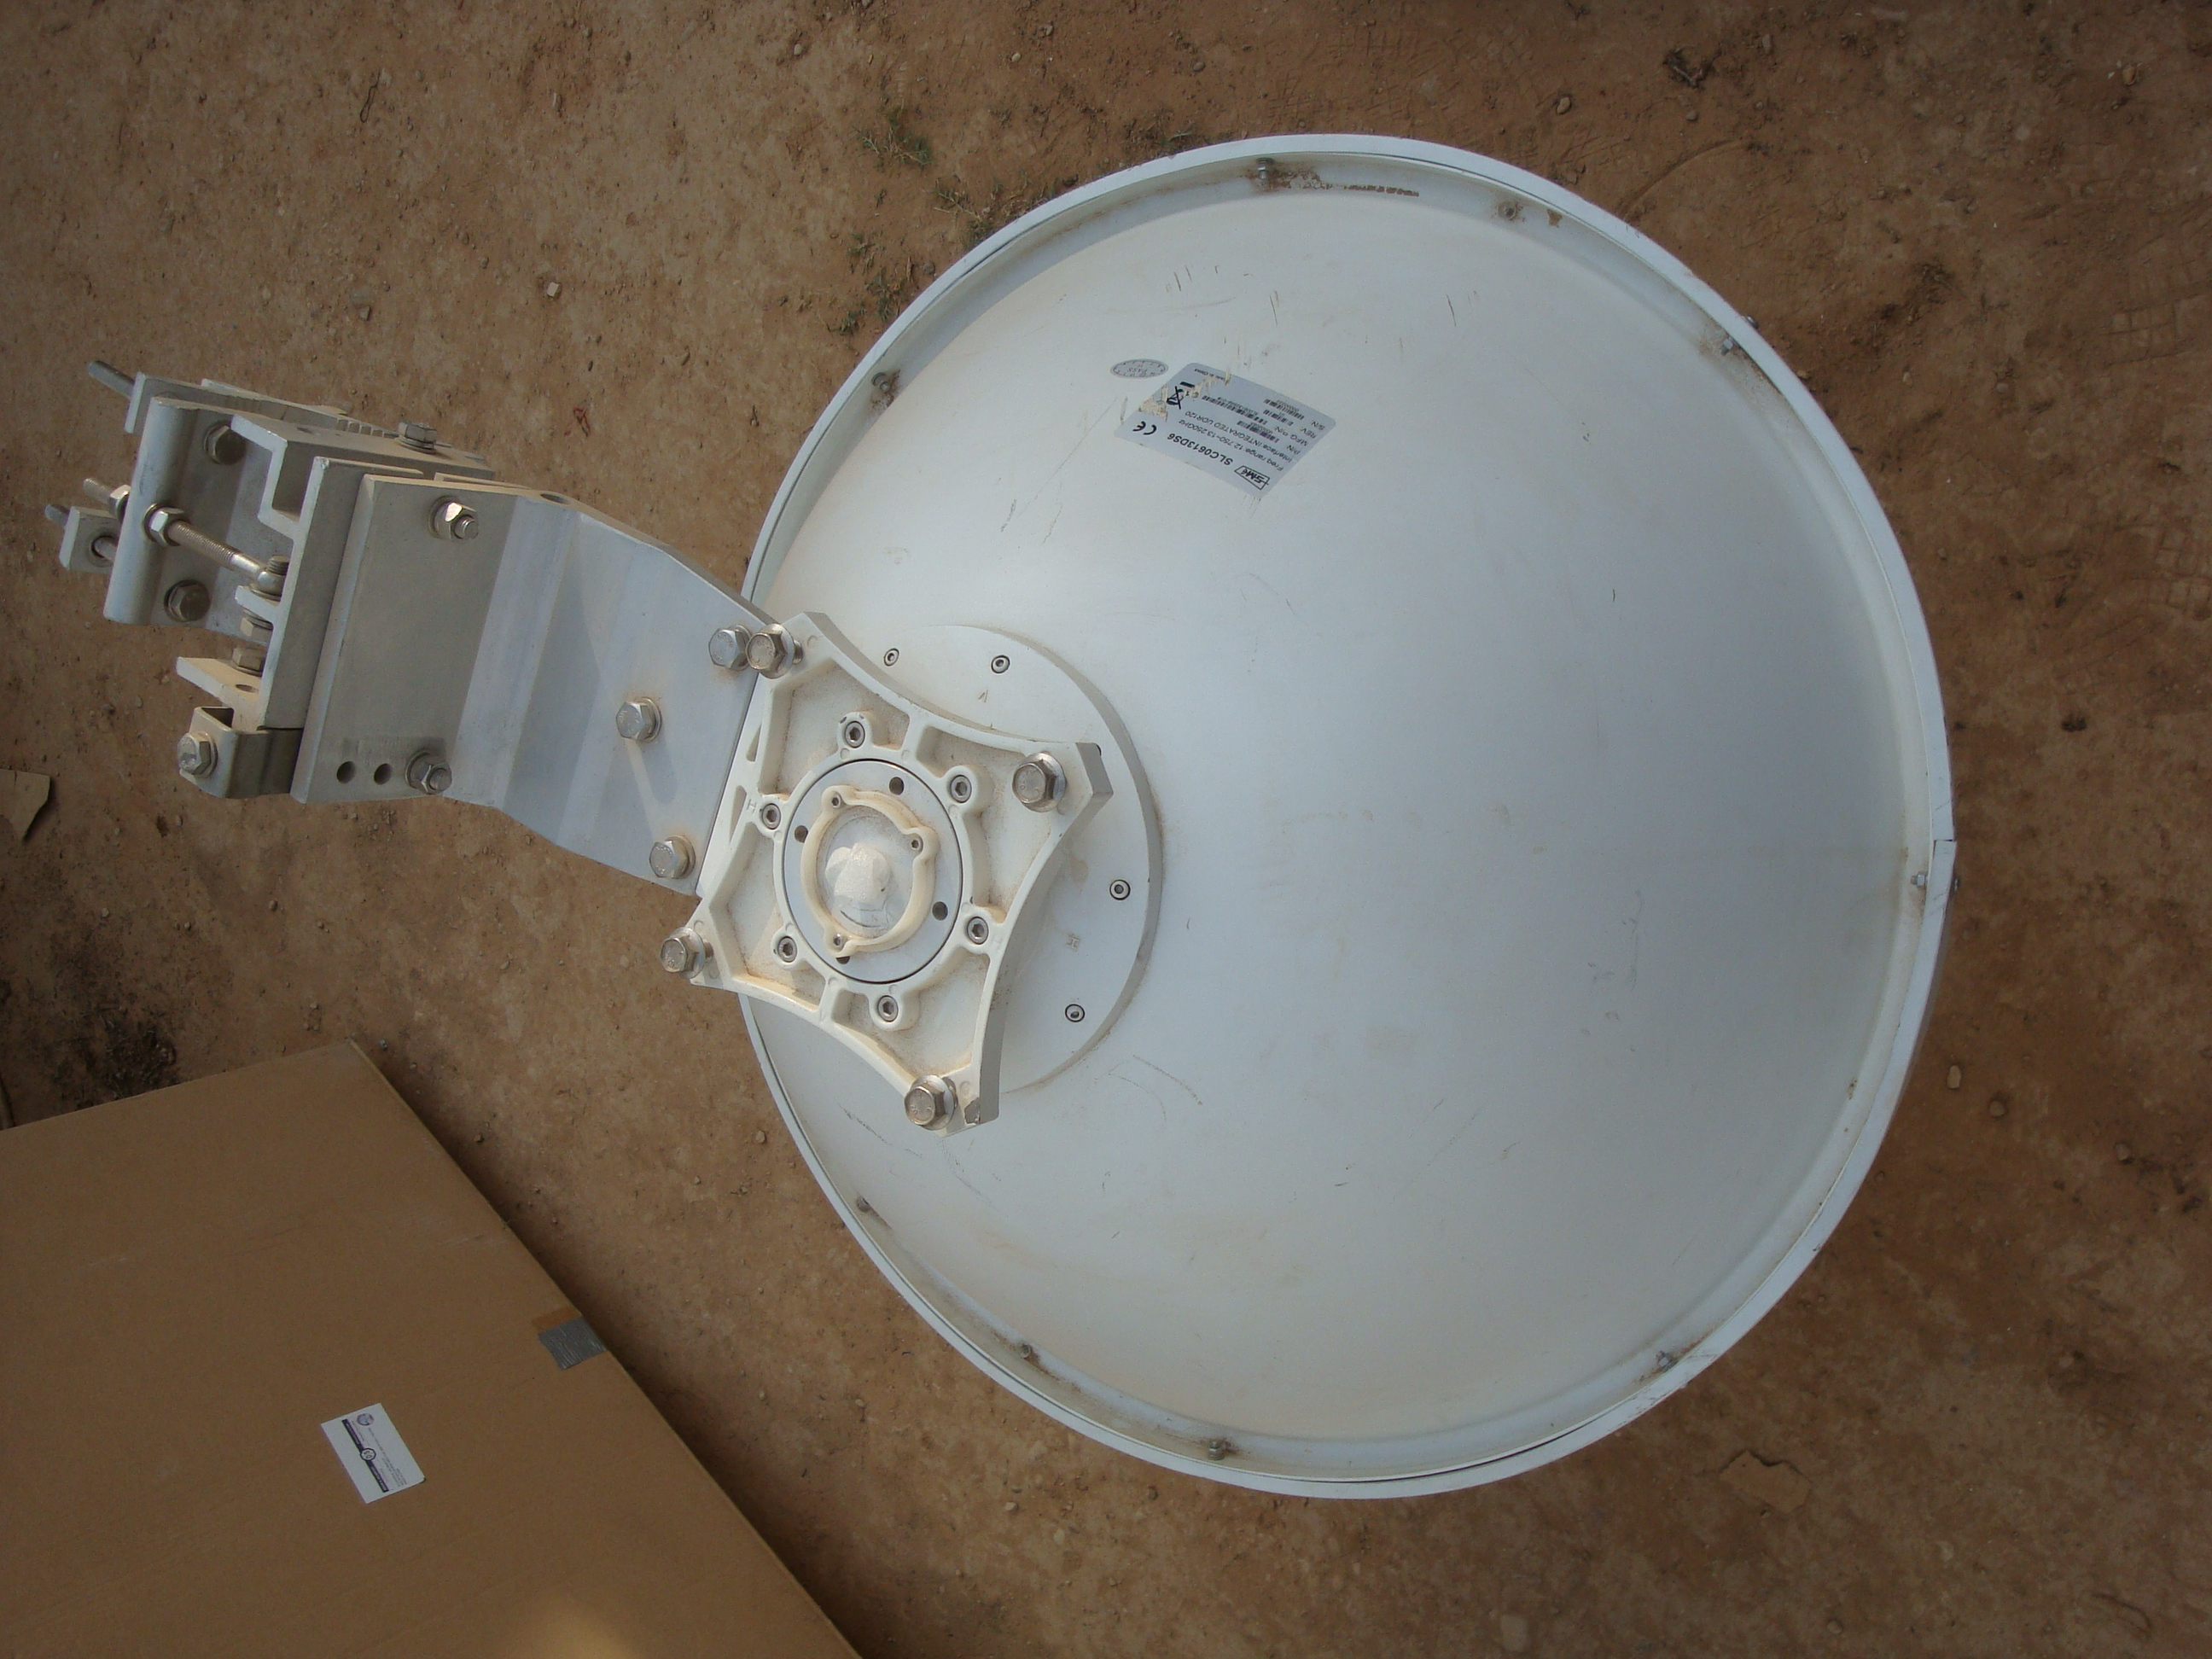 0.6M Antenna Dia. Freq. range 12.7-13.25Ghz with bracket